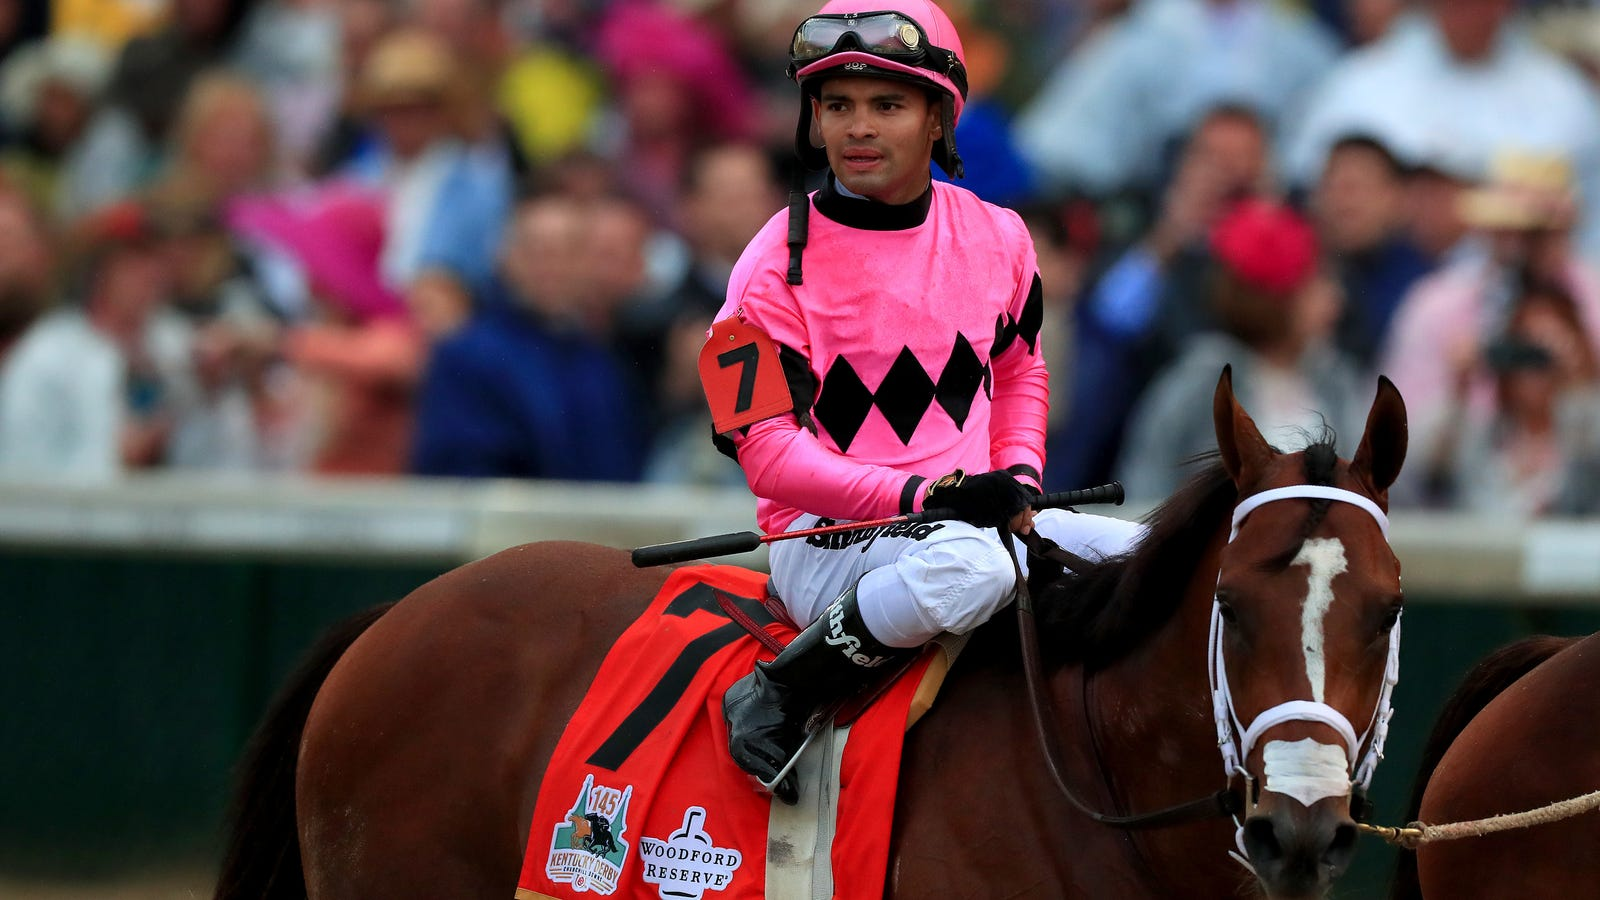 Disqualified Kentucky Derby Jockey Hit With Suspension For